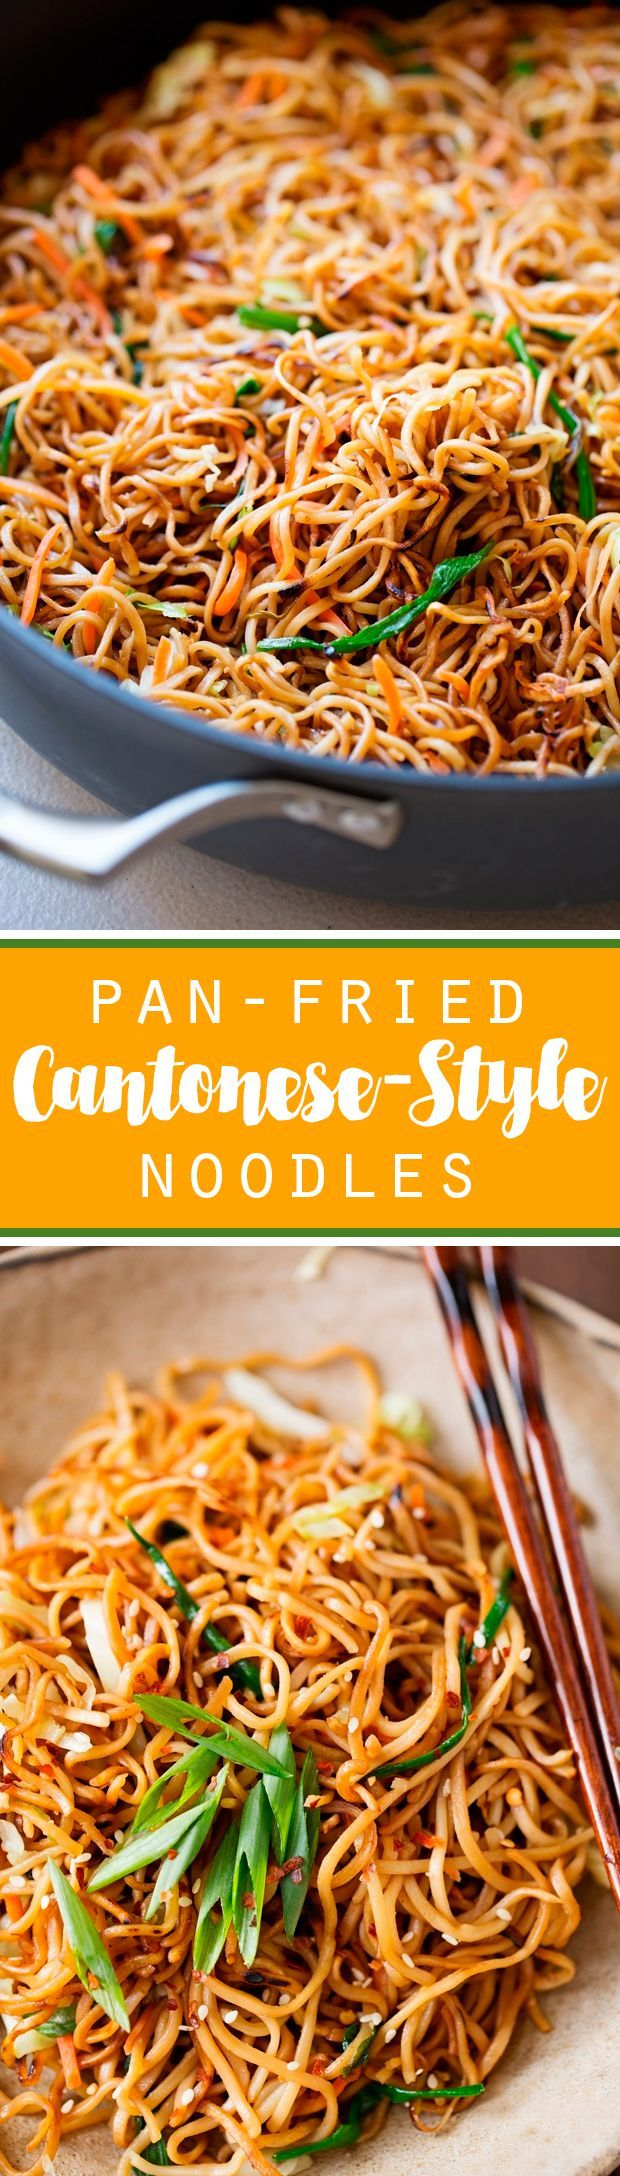 Cantonese-Style Pan-Fried Noodles - smokey noodles just like your favorite restaurants and it's a quick 30 minutes to make! That's faster than takeout! #cantonesenoodles #panfriednoodles #chowmein | http://Littlespicejar.com